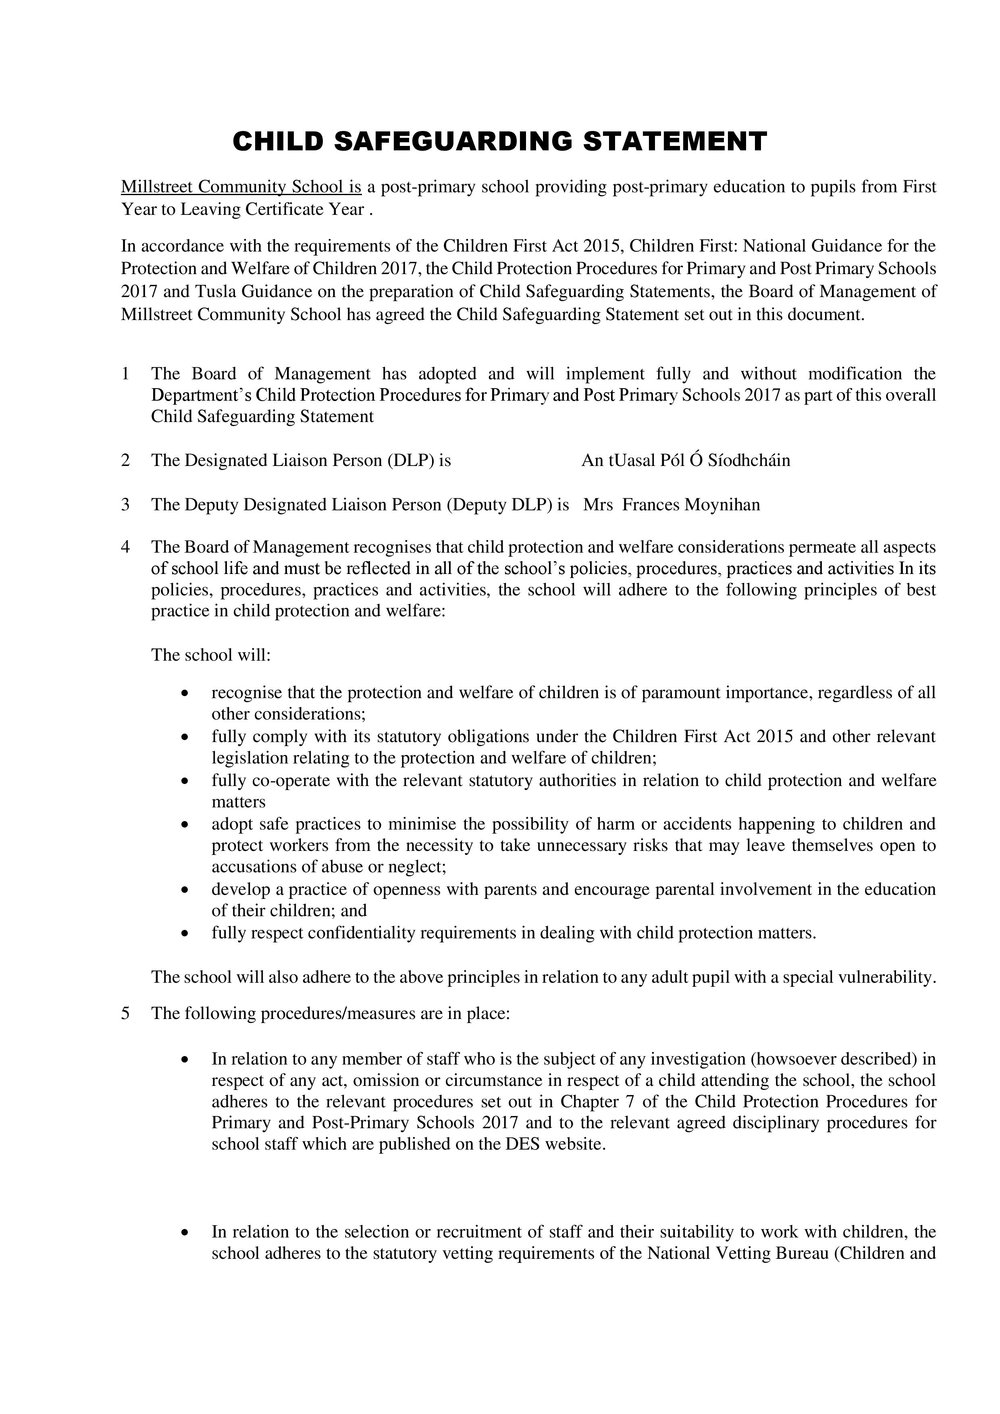 Child Safeguarding Statement-page-001.jpg